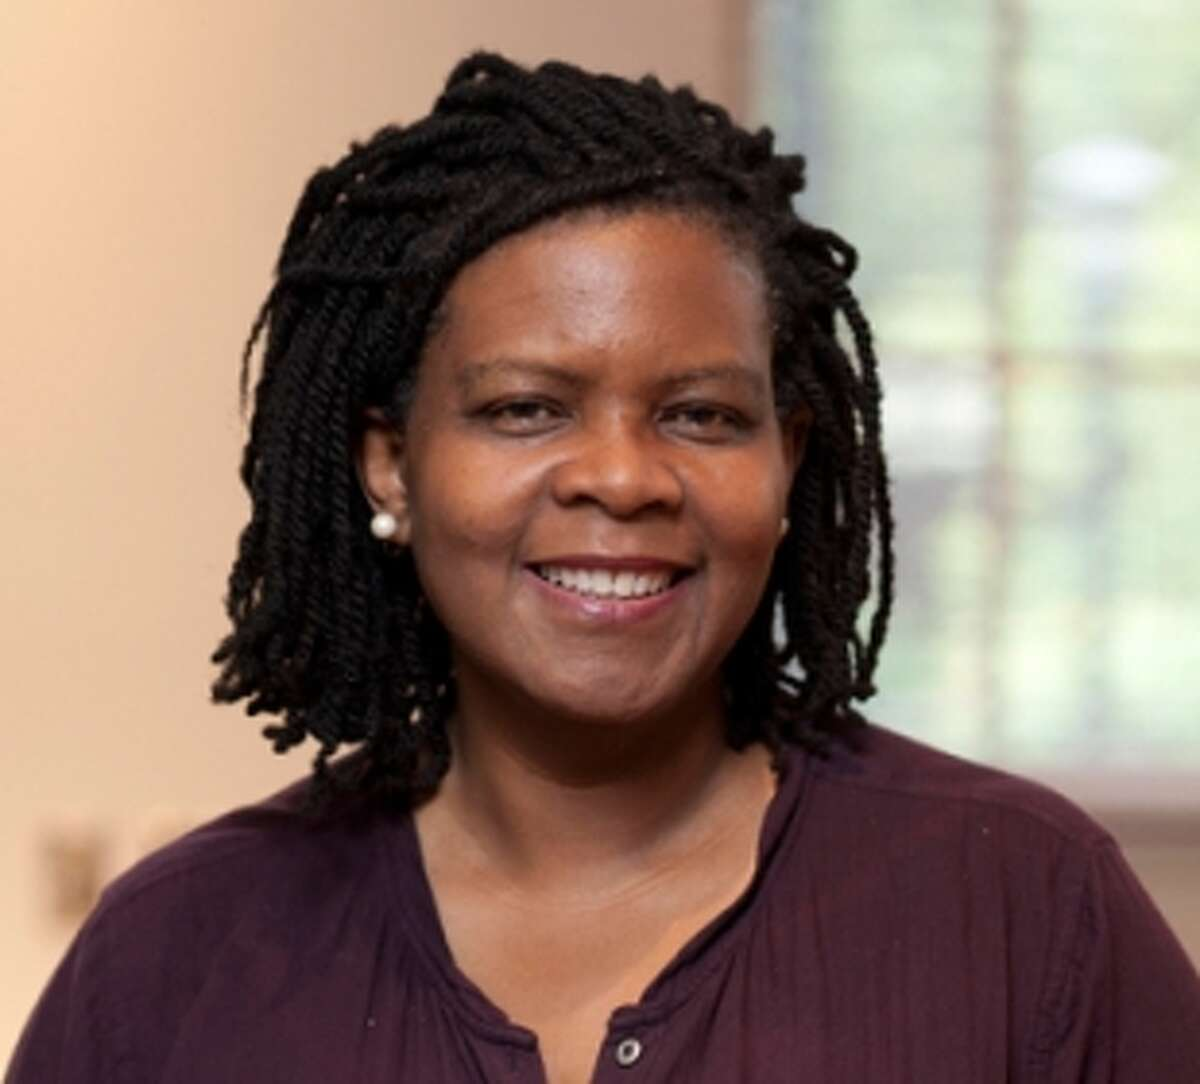 Annette Gordon-Reed is a professor of history and law at Harvard and the author of the Pulitzer Prize-winning book